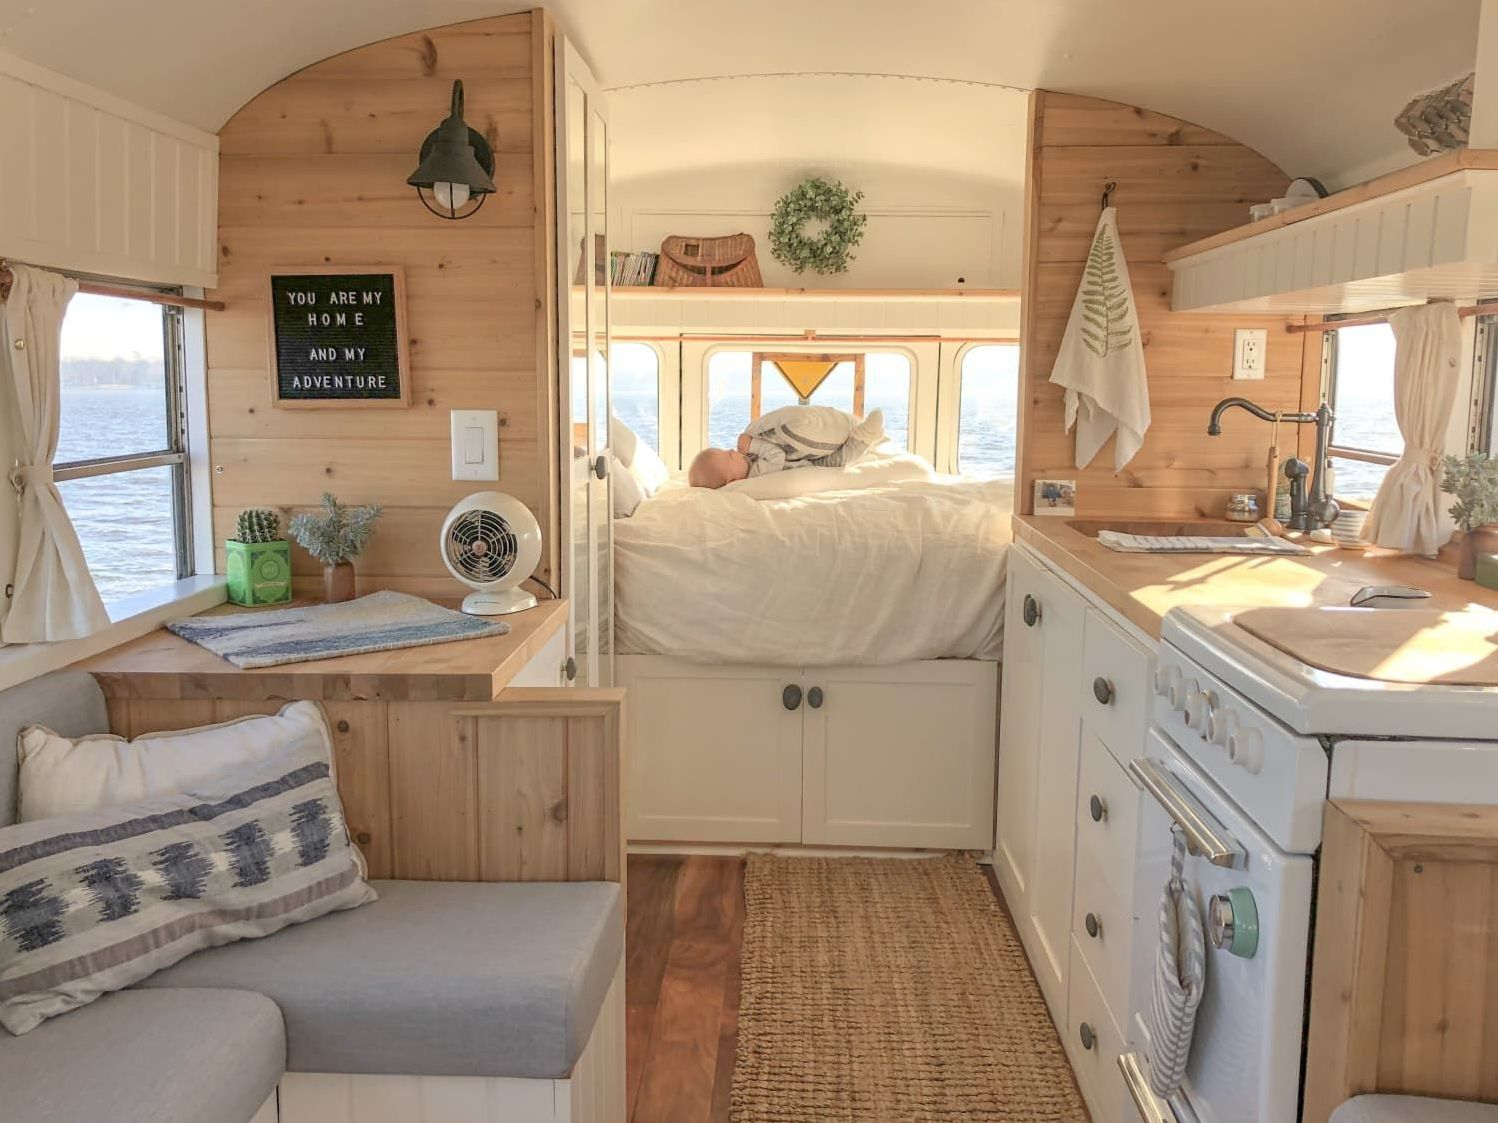 17 Campervan Interior Design Ideas